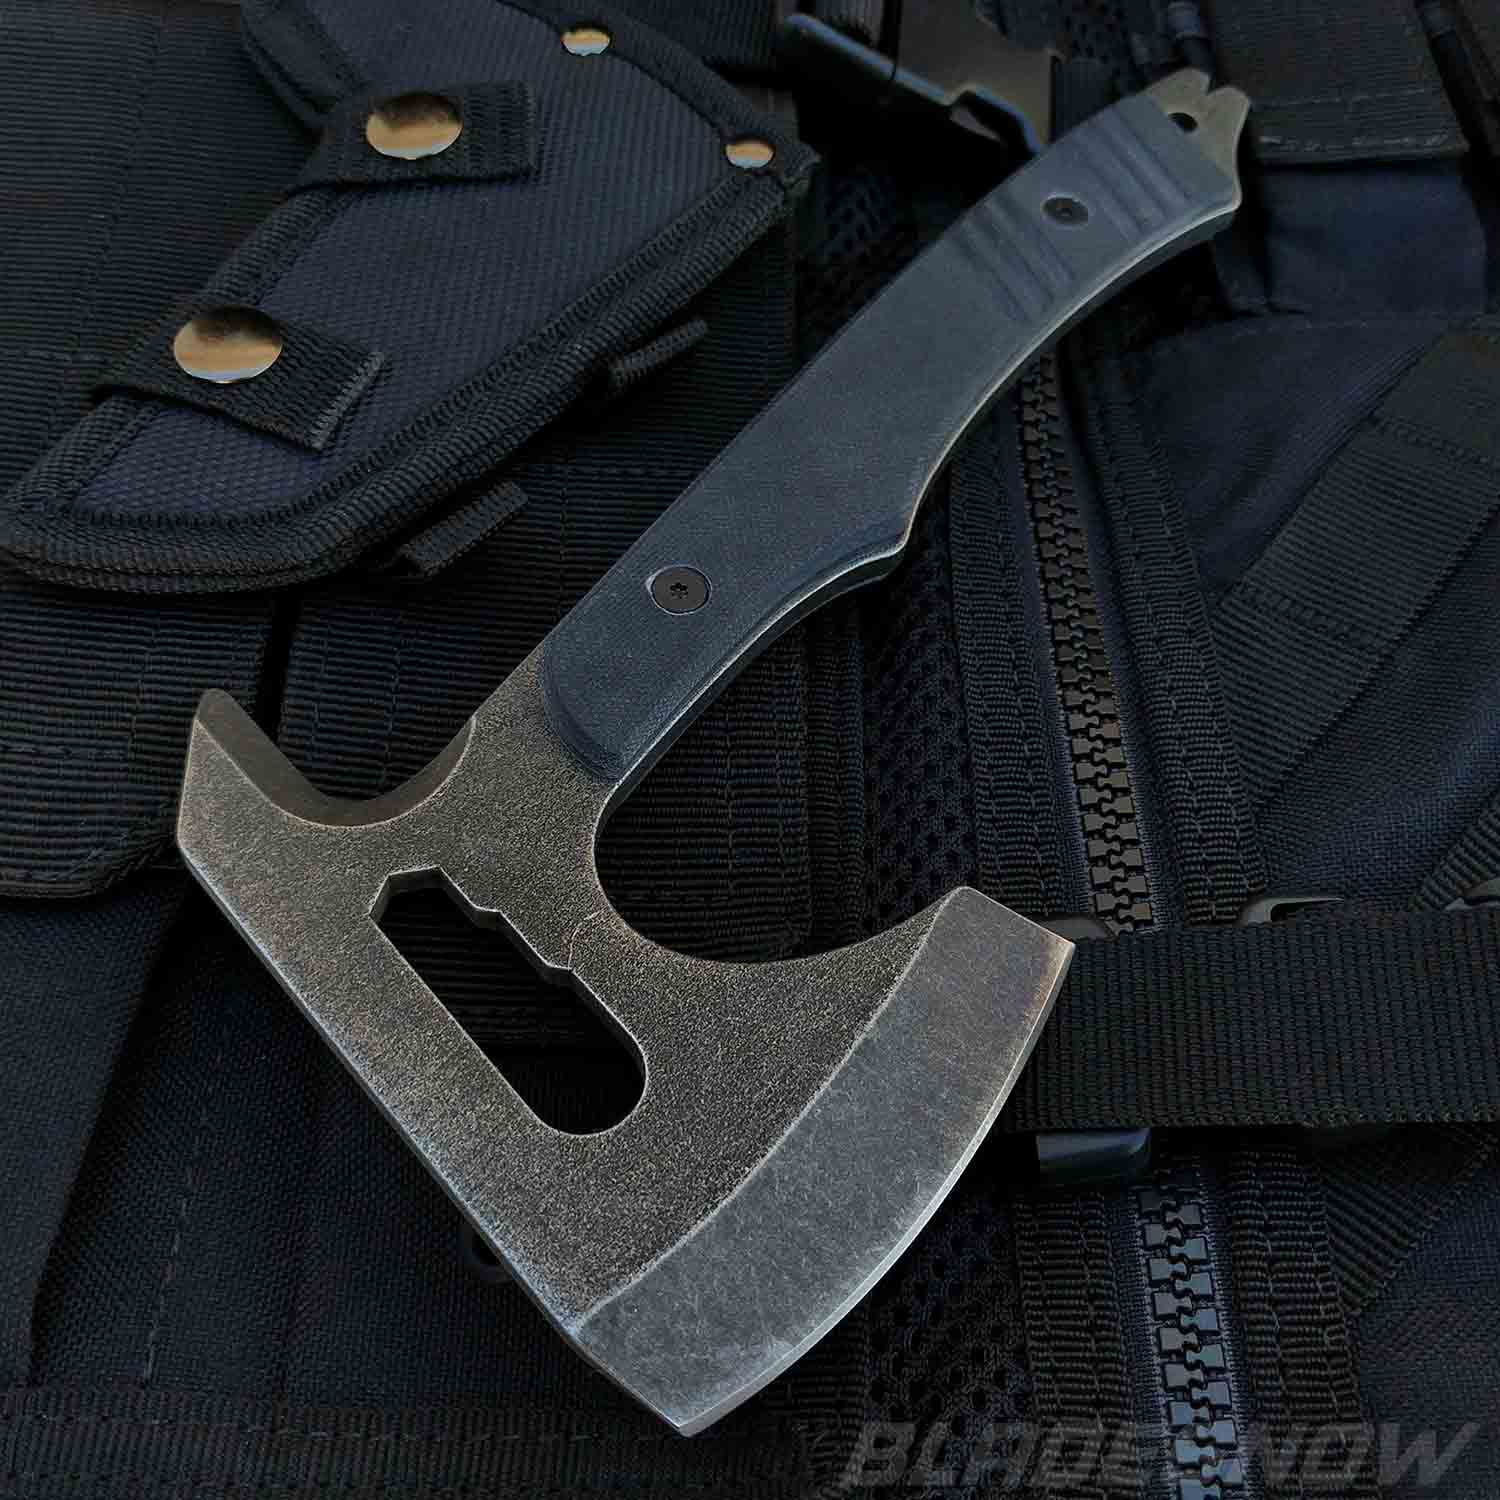 G10 Hatchet Axe Stonewashed